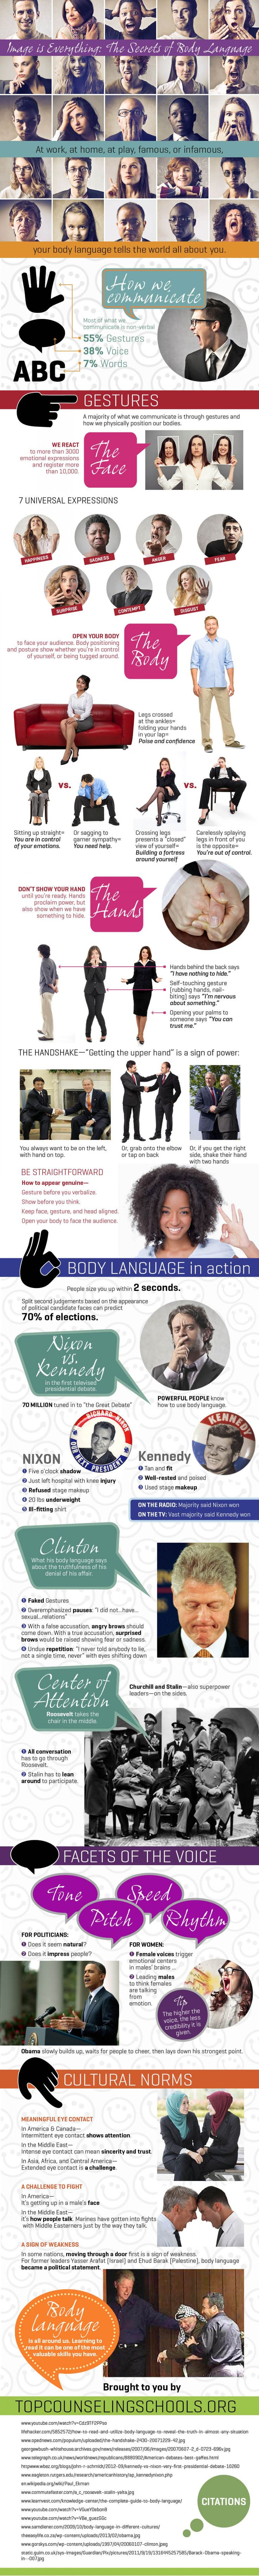 The Secrets of Body Language -shared by bogdan on Apr 02, 2014